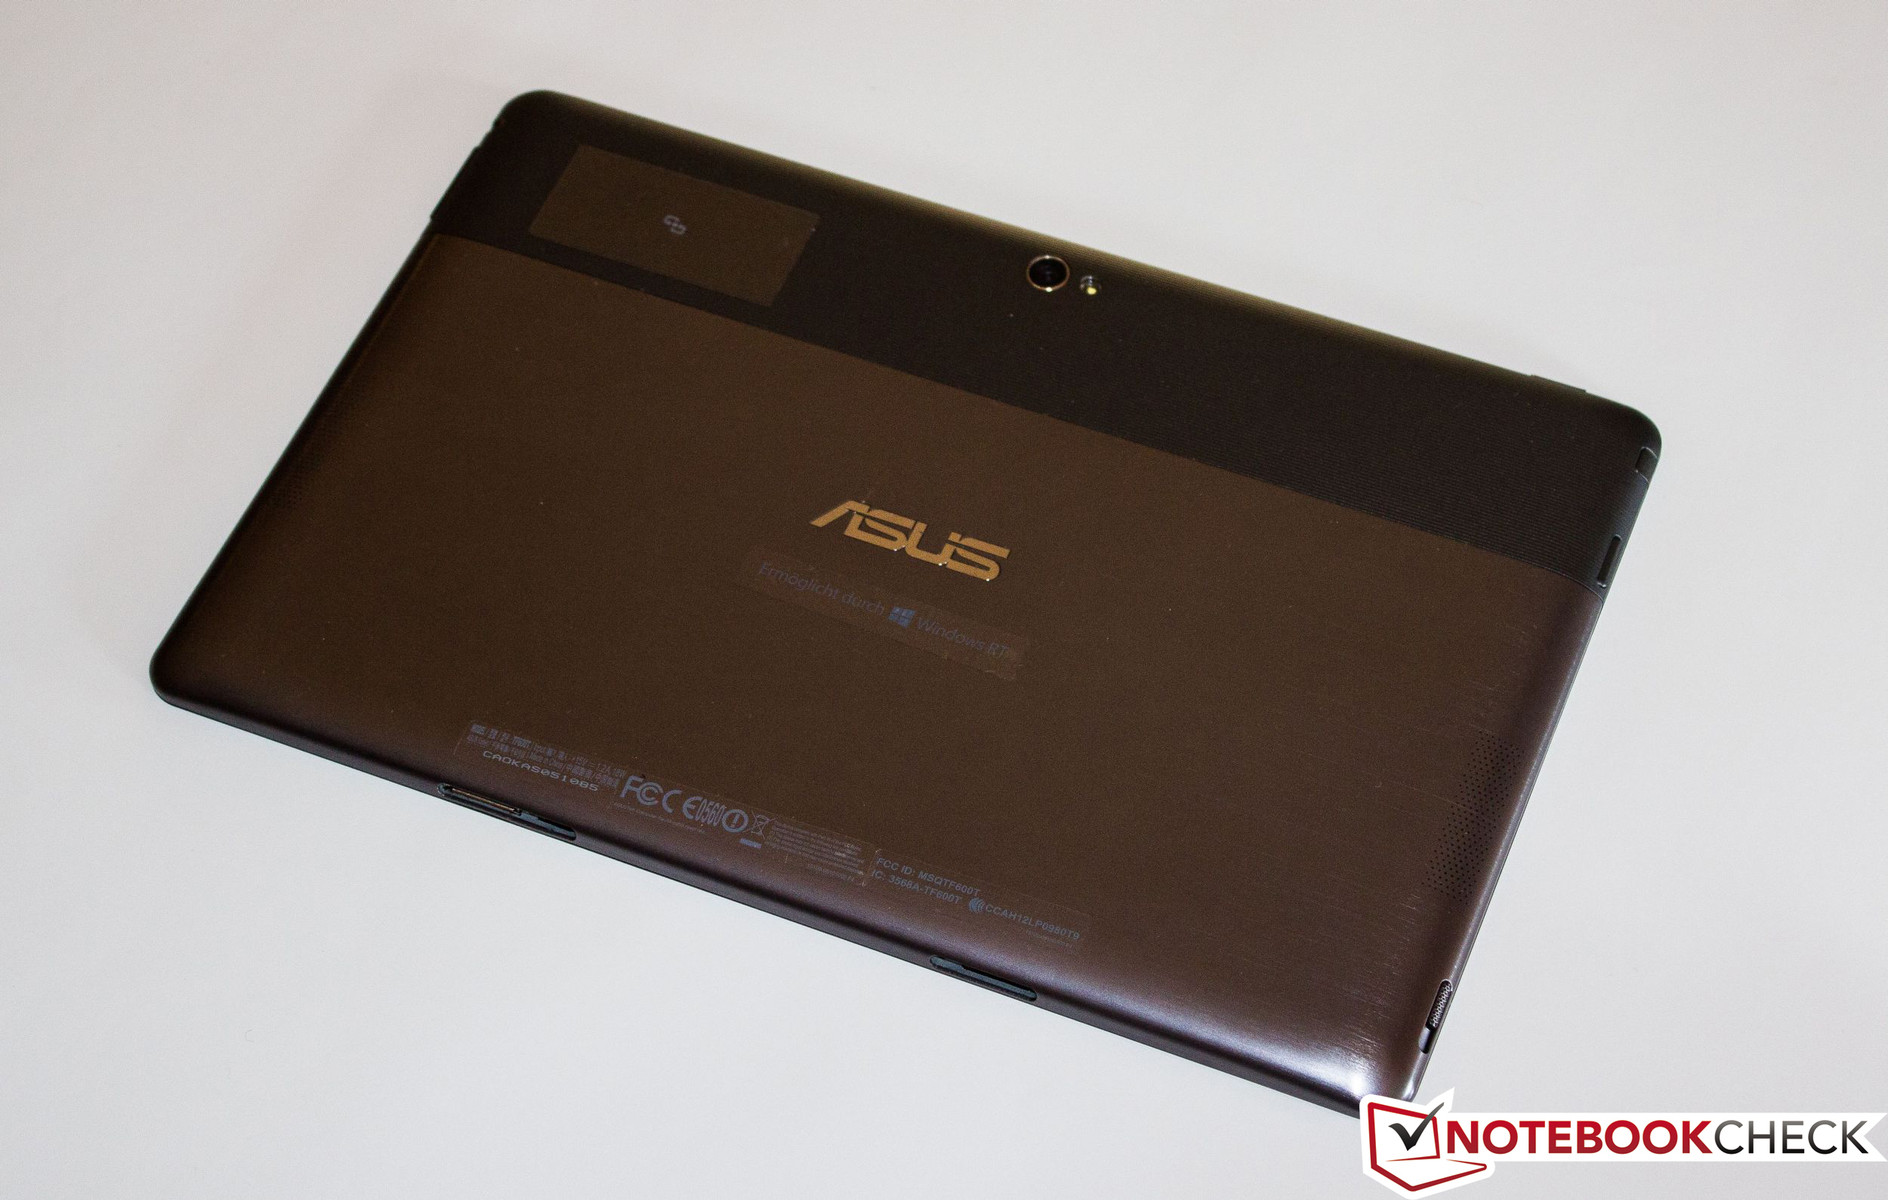 Review Asus Vivo Tab RT TF600 Tablet - NotebookCheck net Reviews